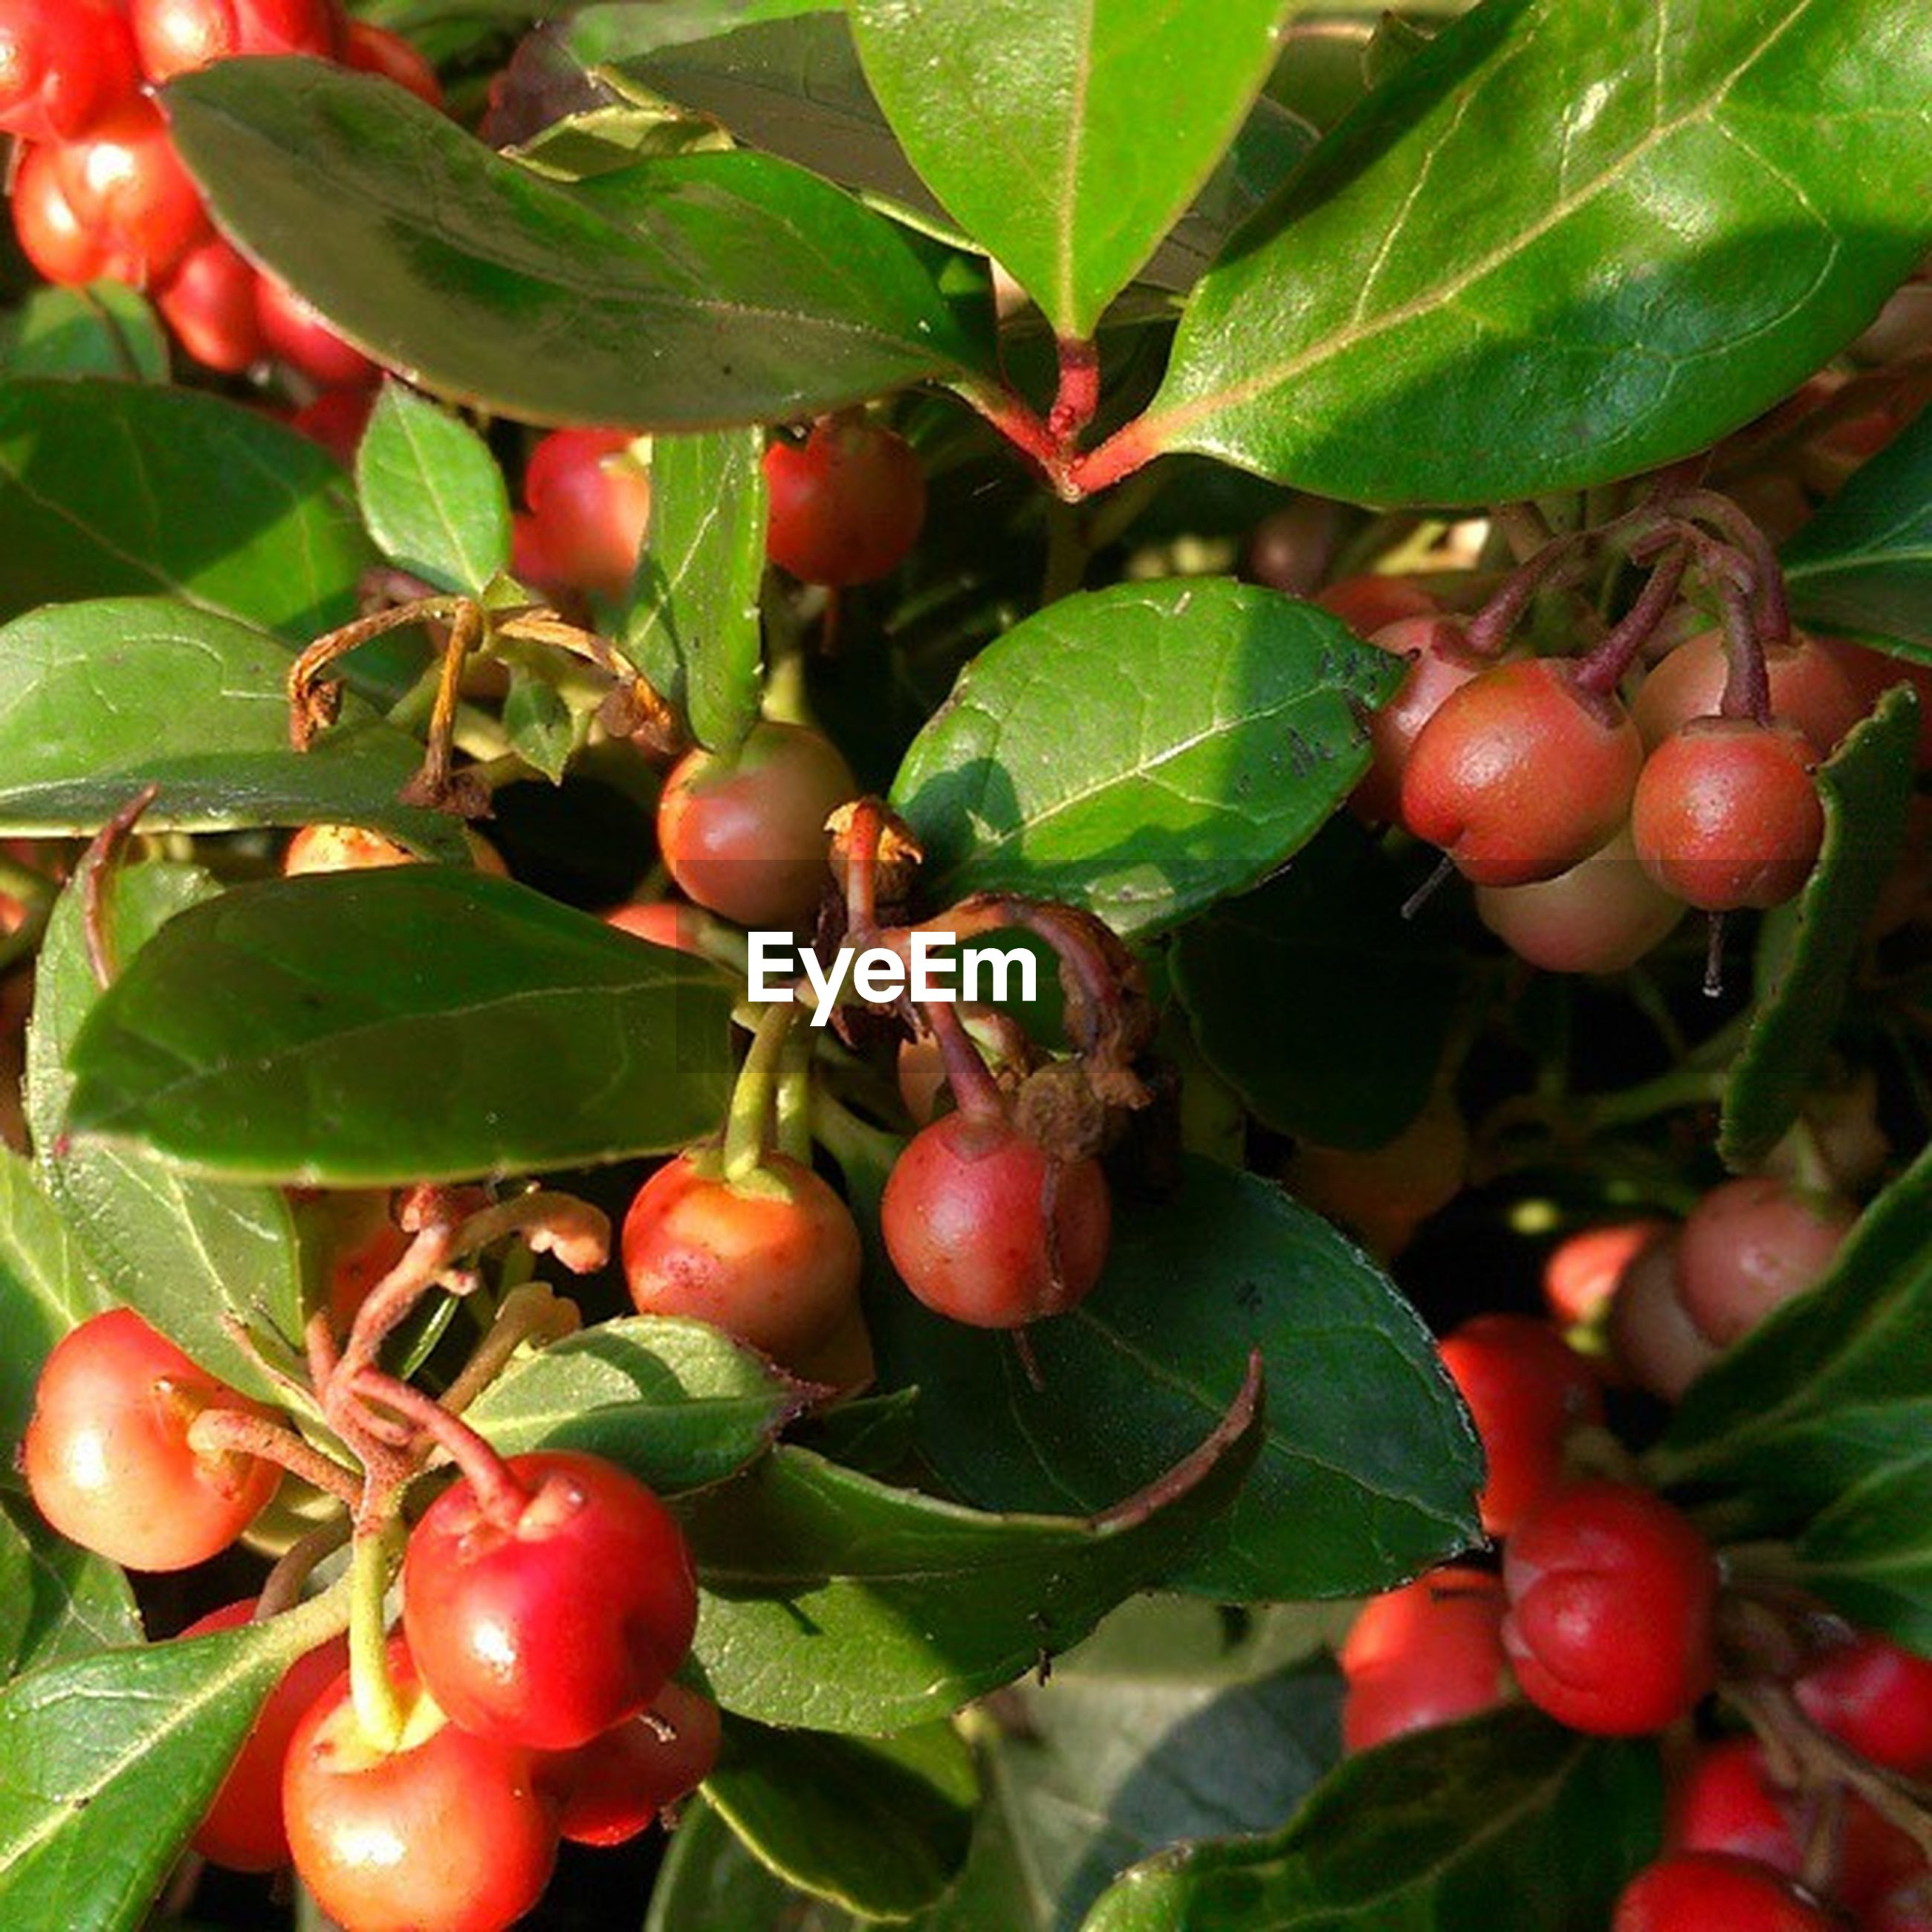 food and drink, fruit, food, healthy eating, freshness, red, leaf, ripe, growth, tree, close-up, green color, berry fruit, hanging, agriculture, branch, cherry, juicy, organic, nature